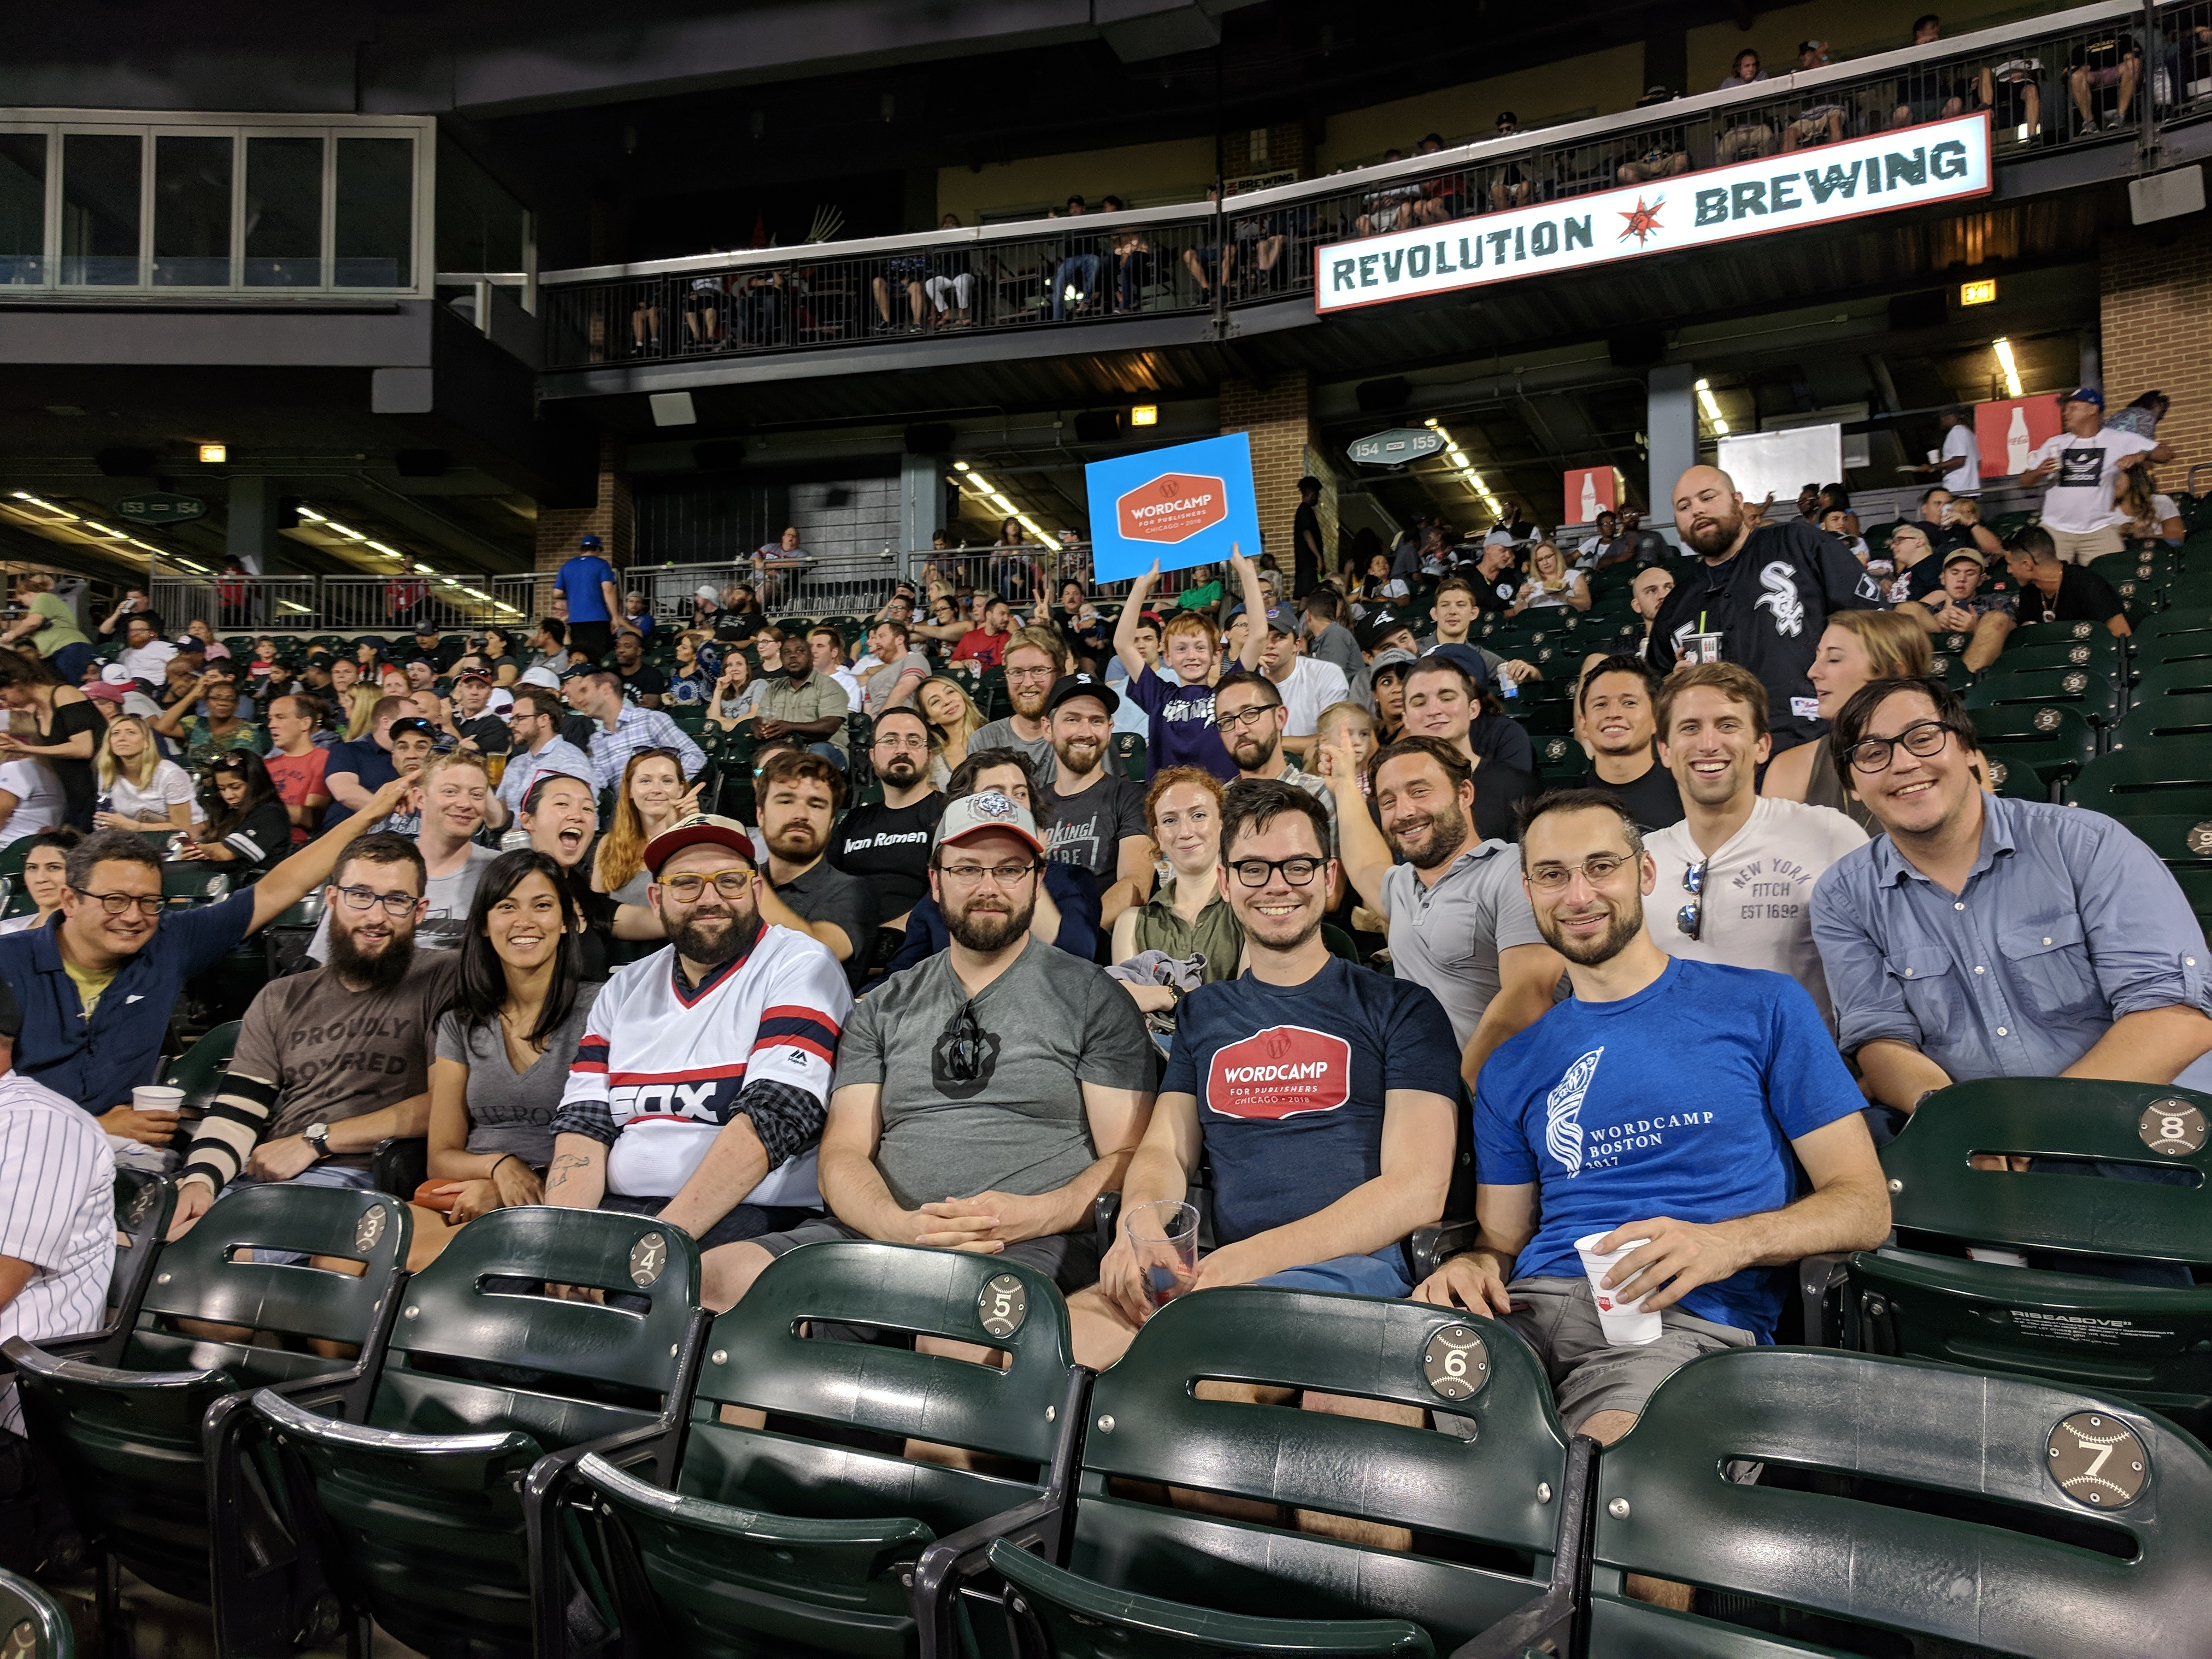 A group of people sitting in the stands of a baseball stadium